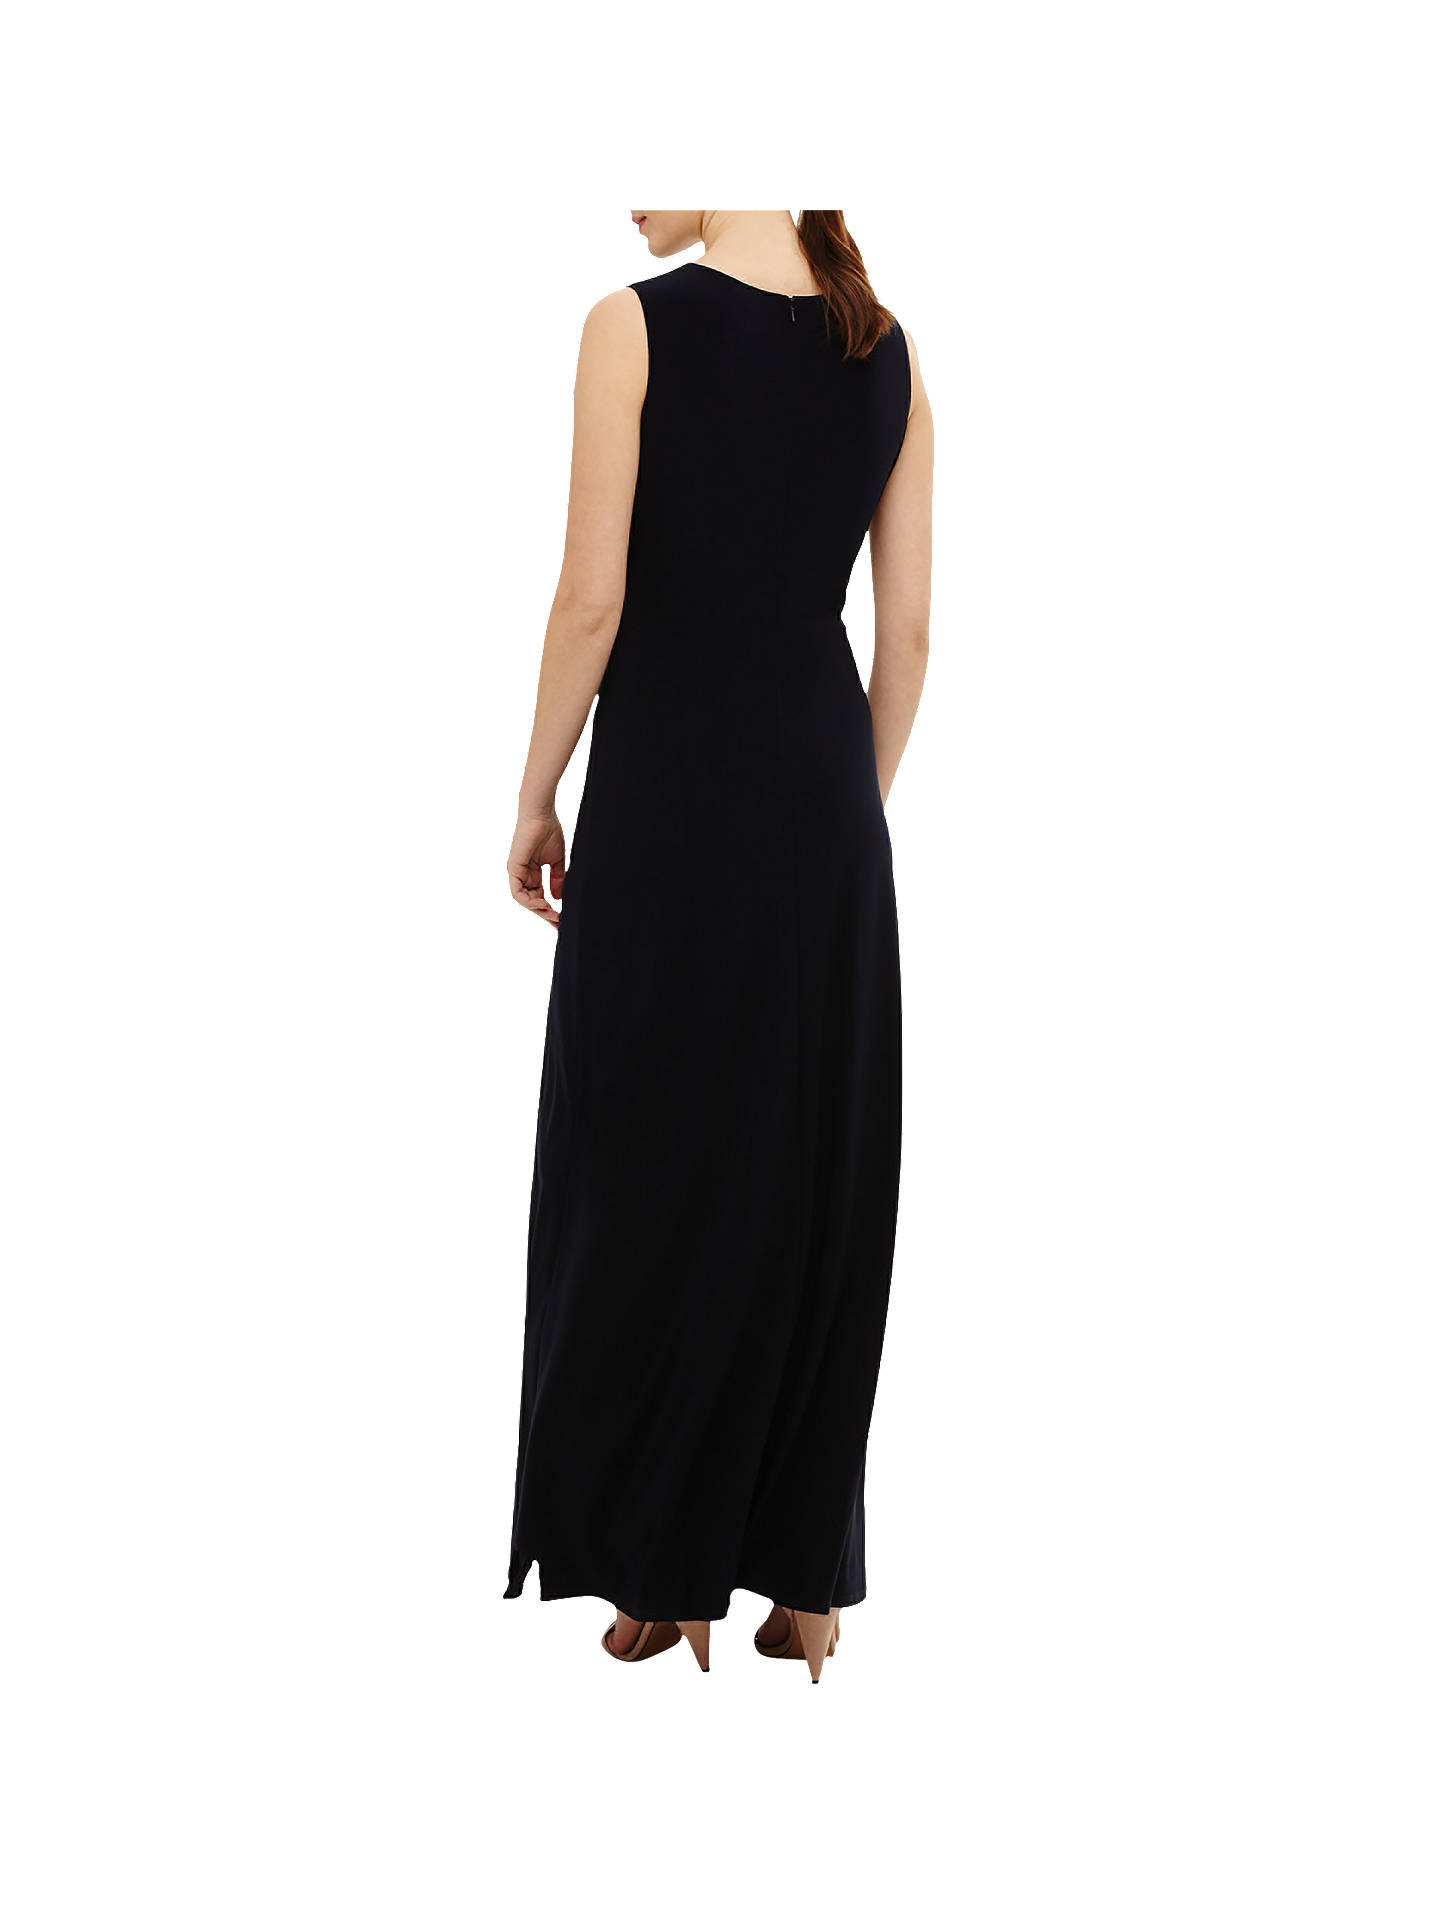 23f4621681c ... Buy Phase Eight Carrie Jersey Maxi Dress, Navy, 6 Online at  johnlewis.com ...